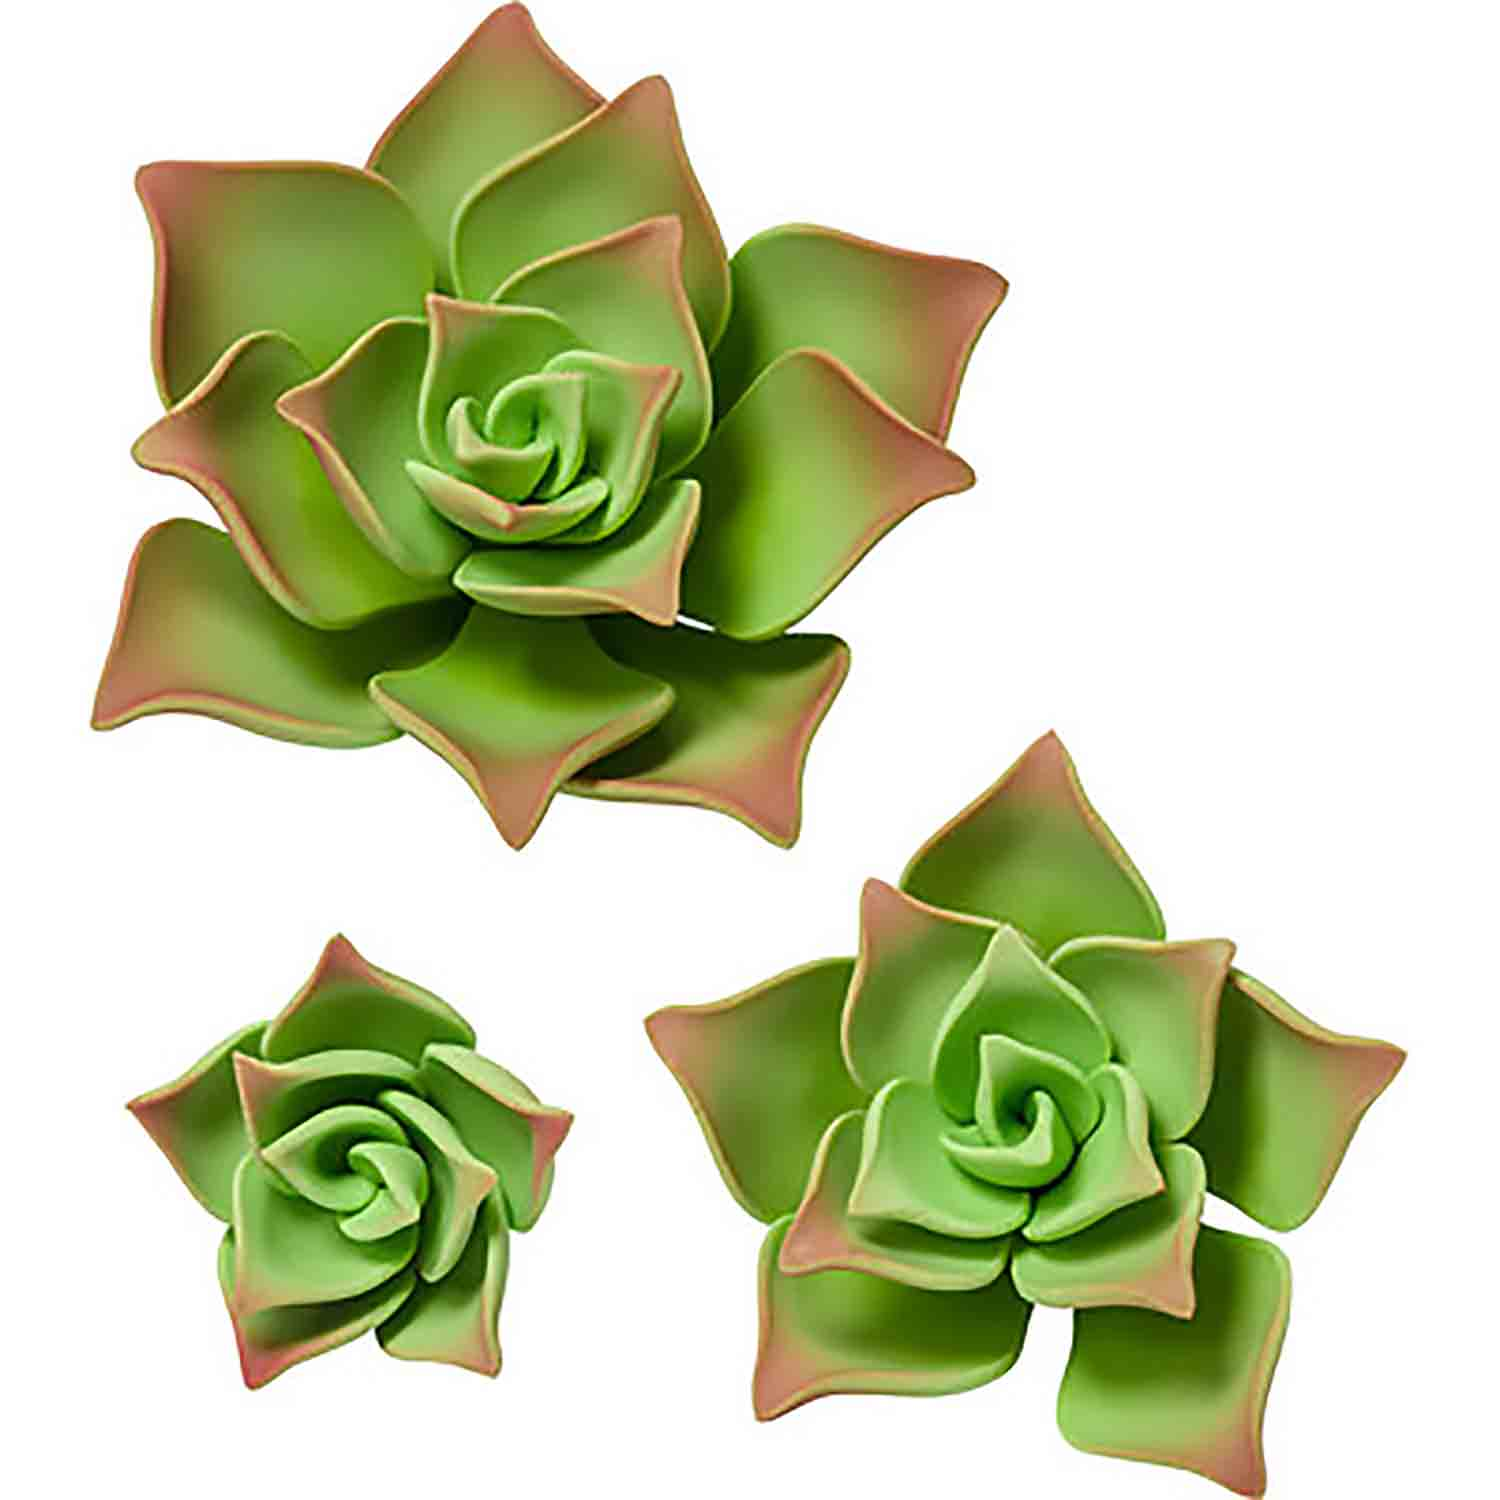 Green Gum Paste Succulents